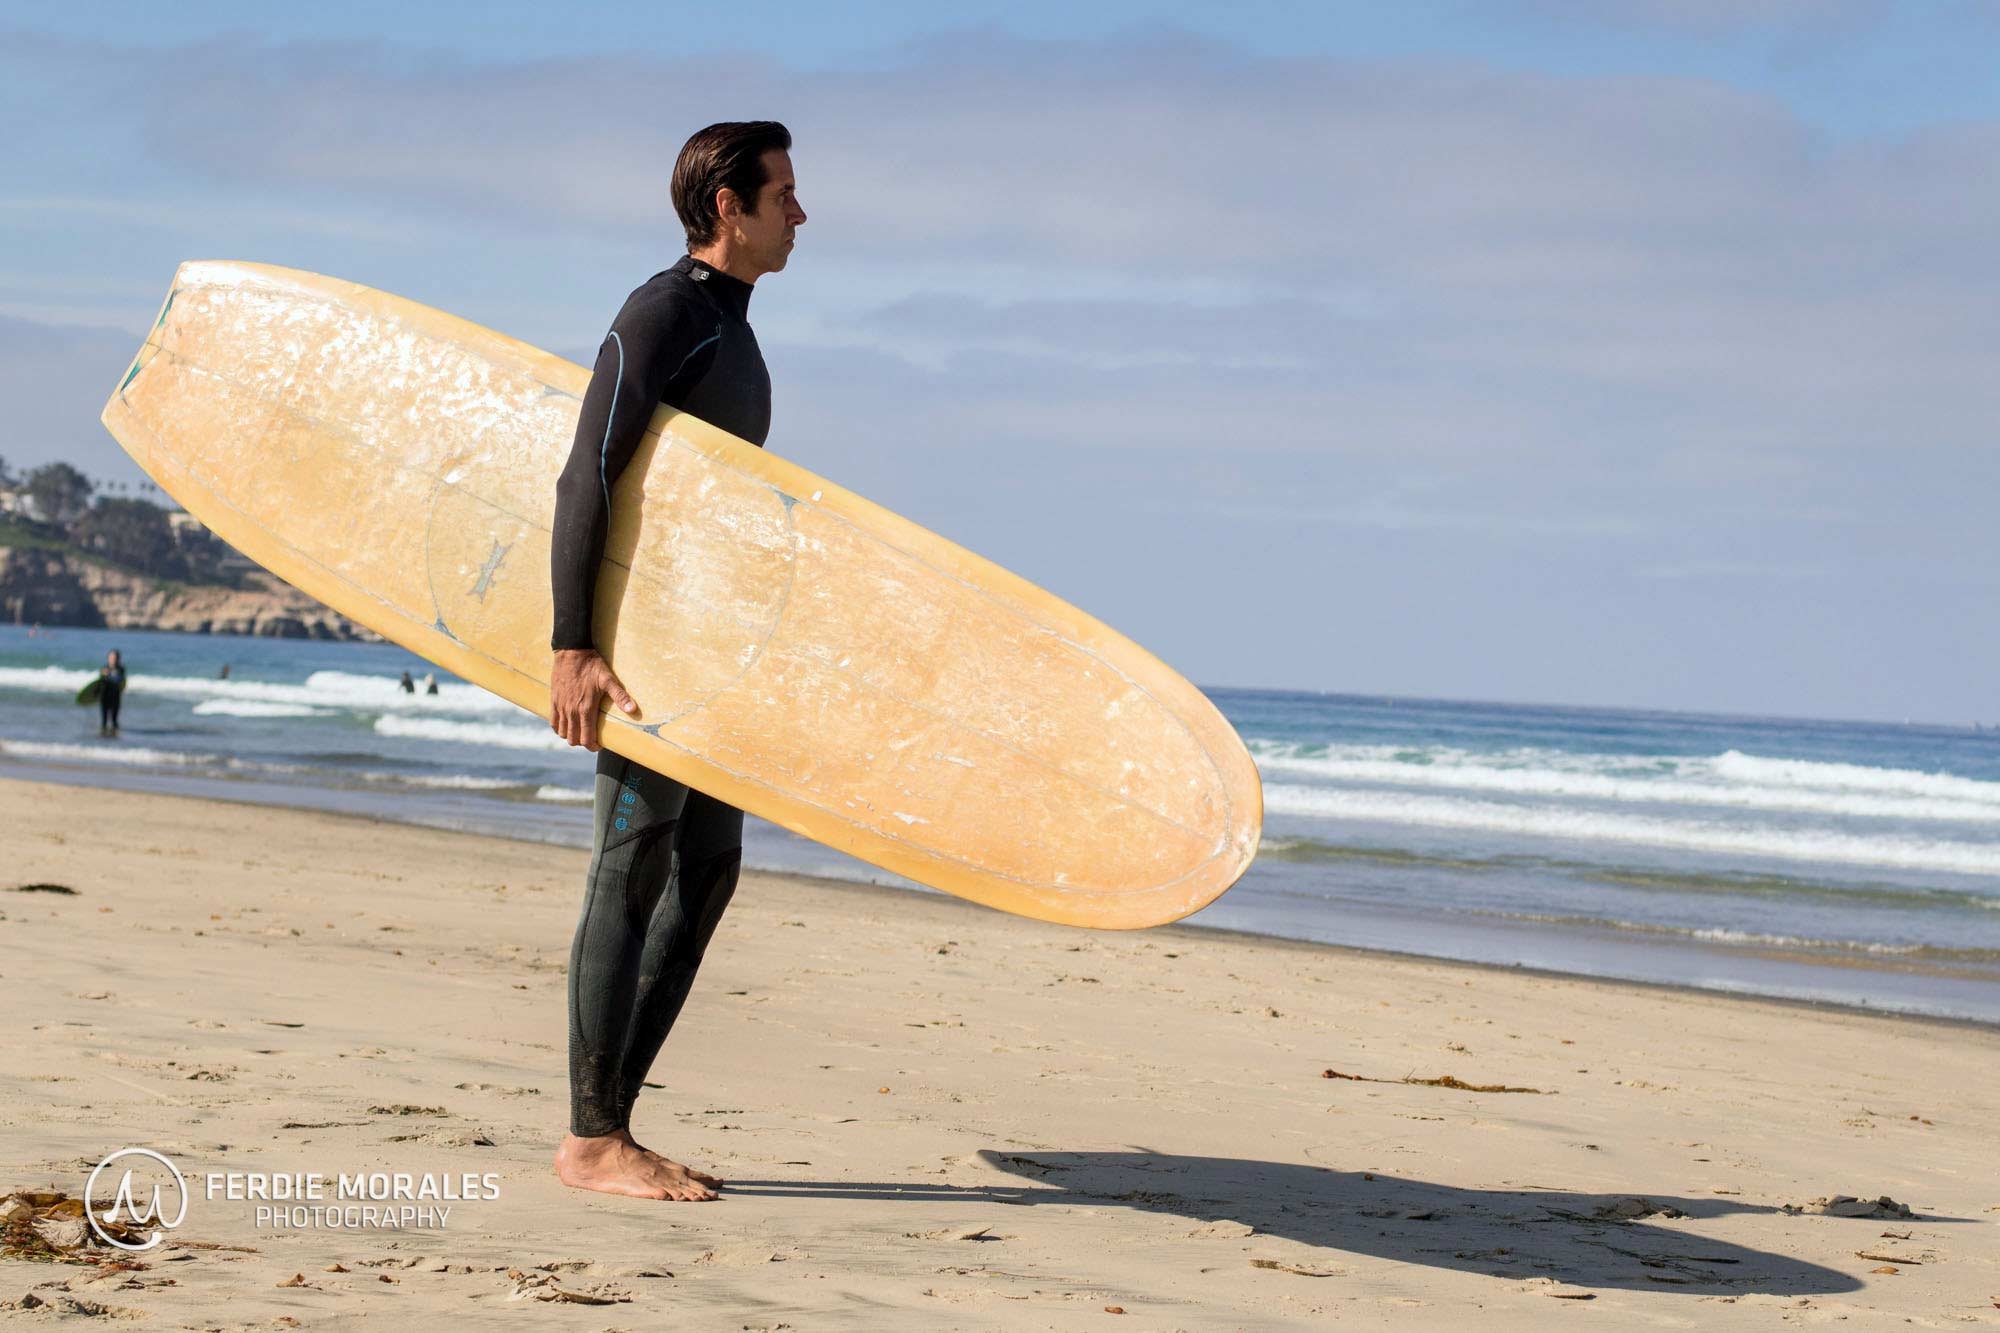 La Jolla Shores session with Ferdie